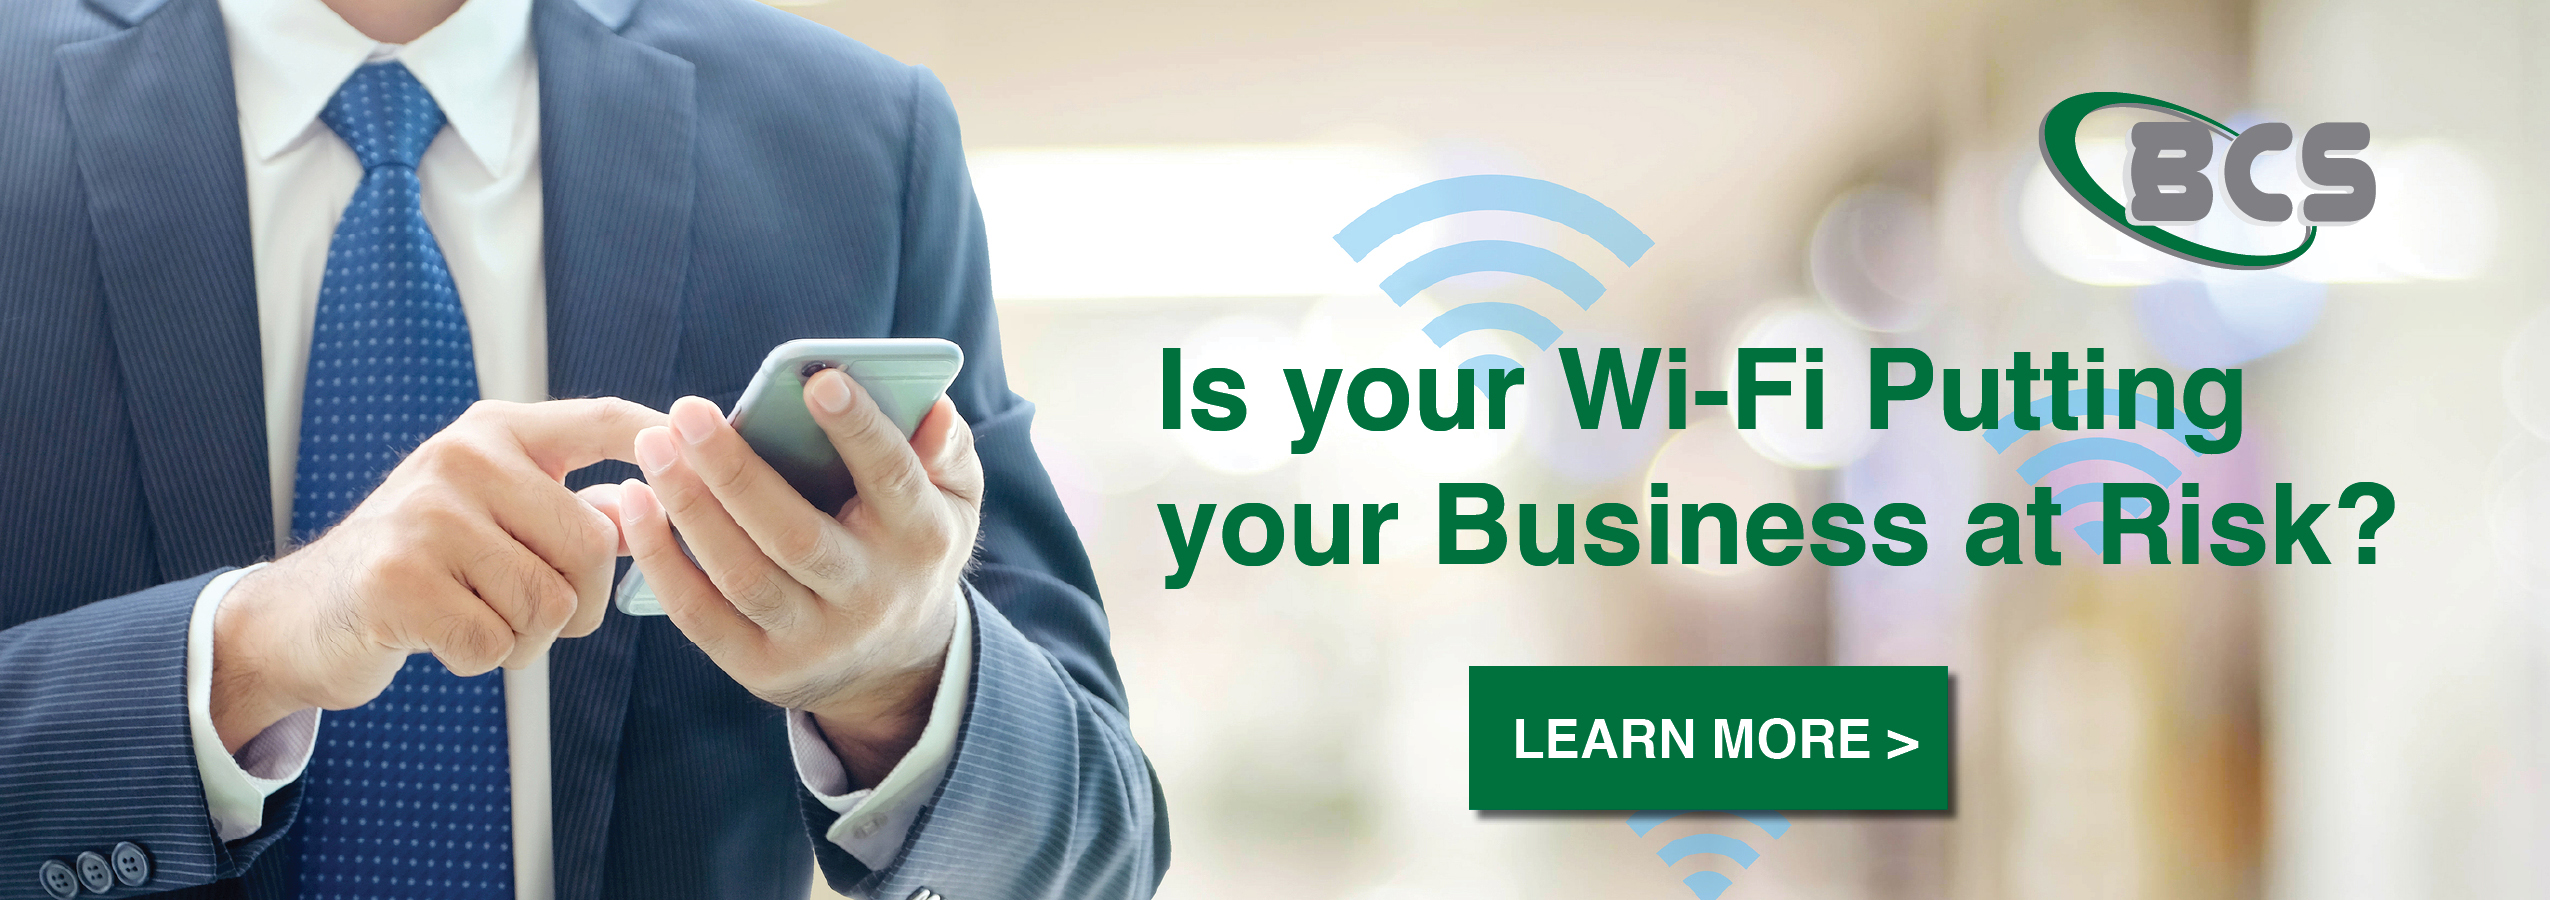 wifi_puttingbusinessatrisk